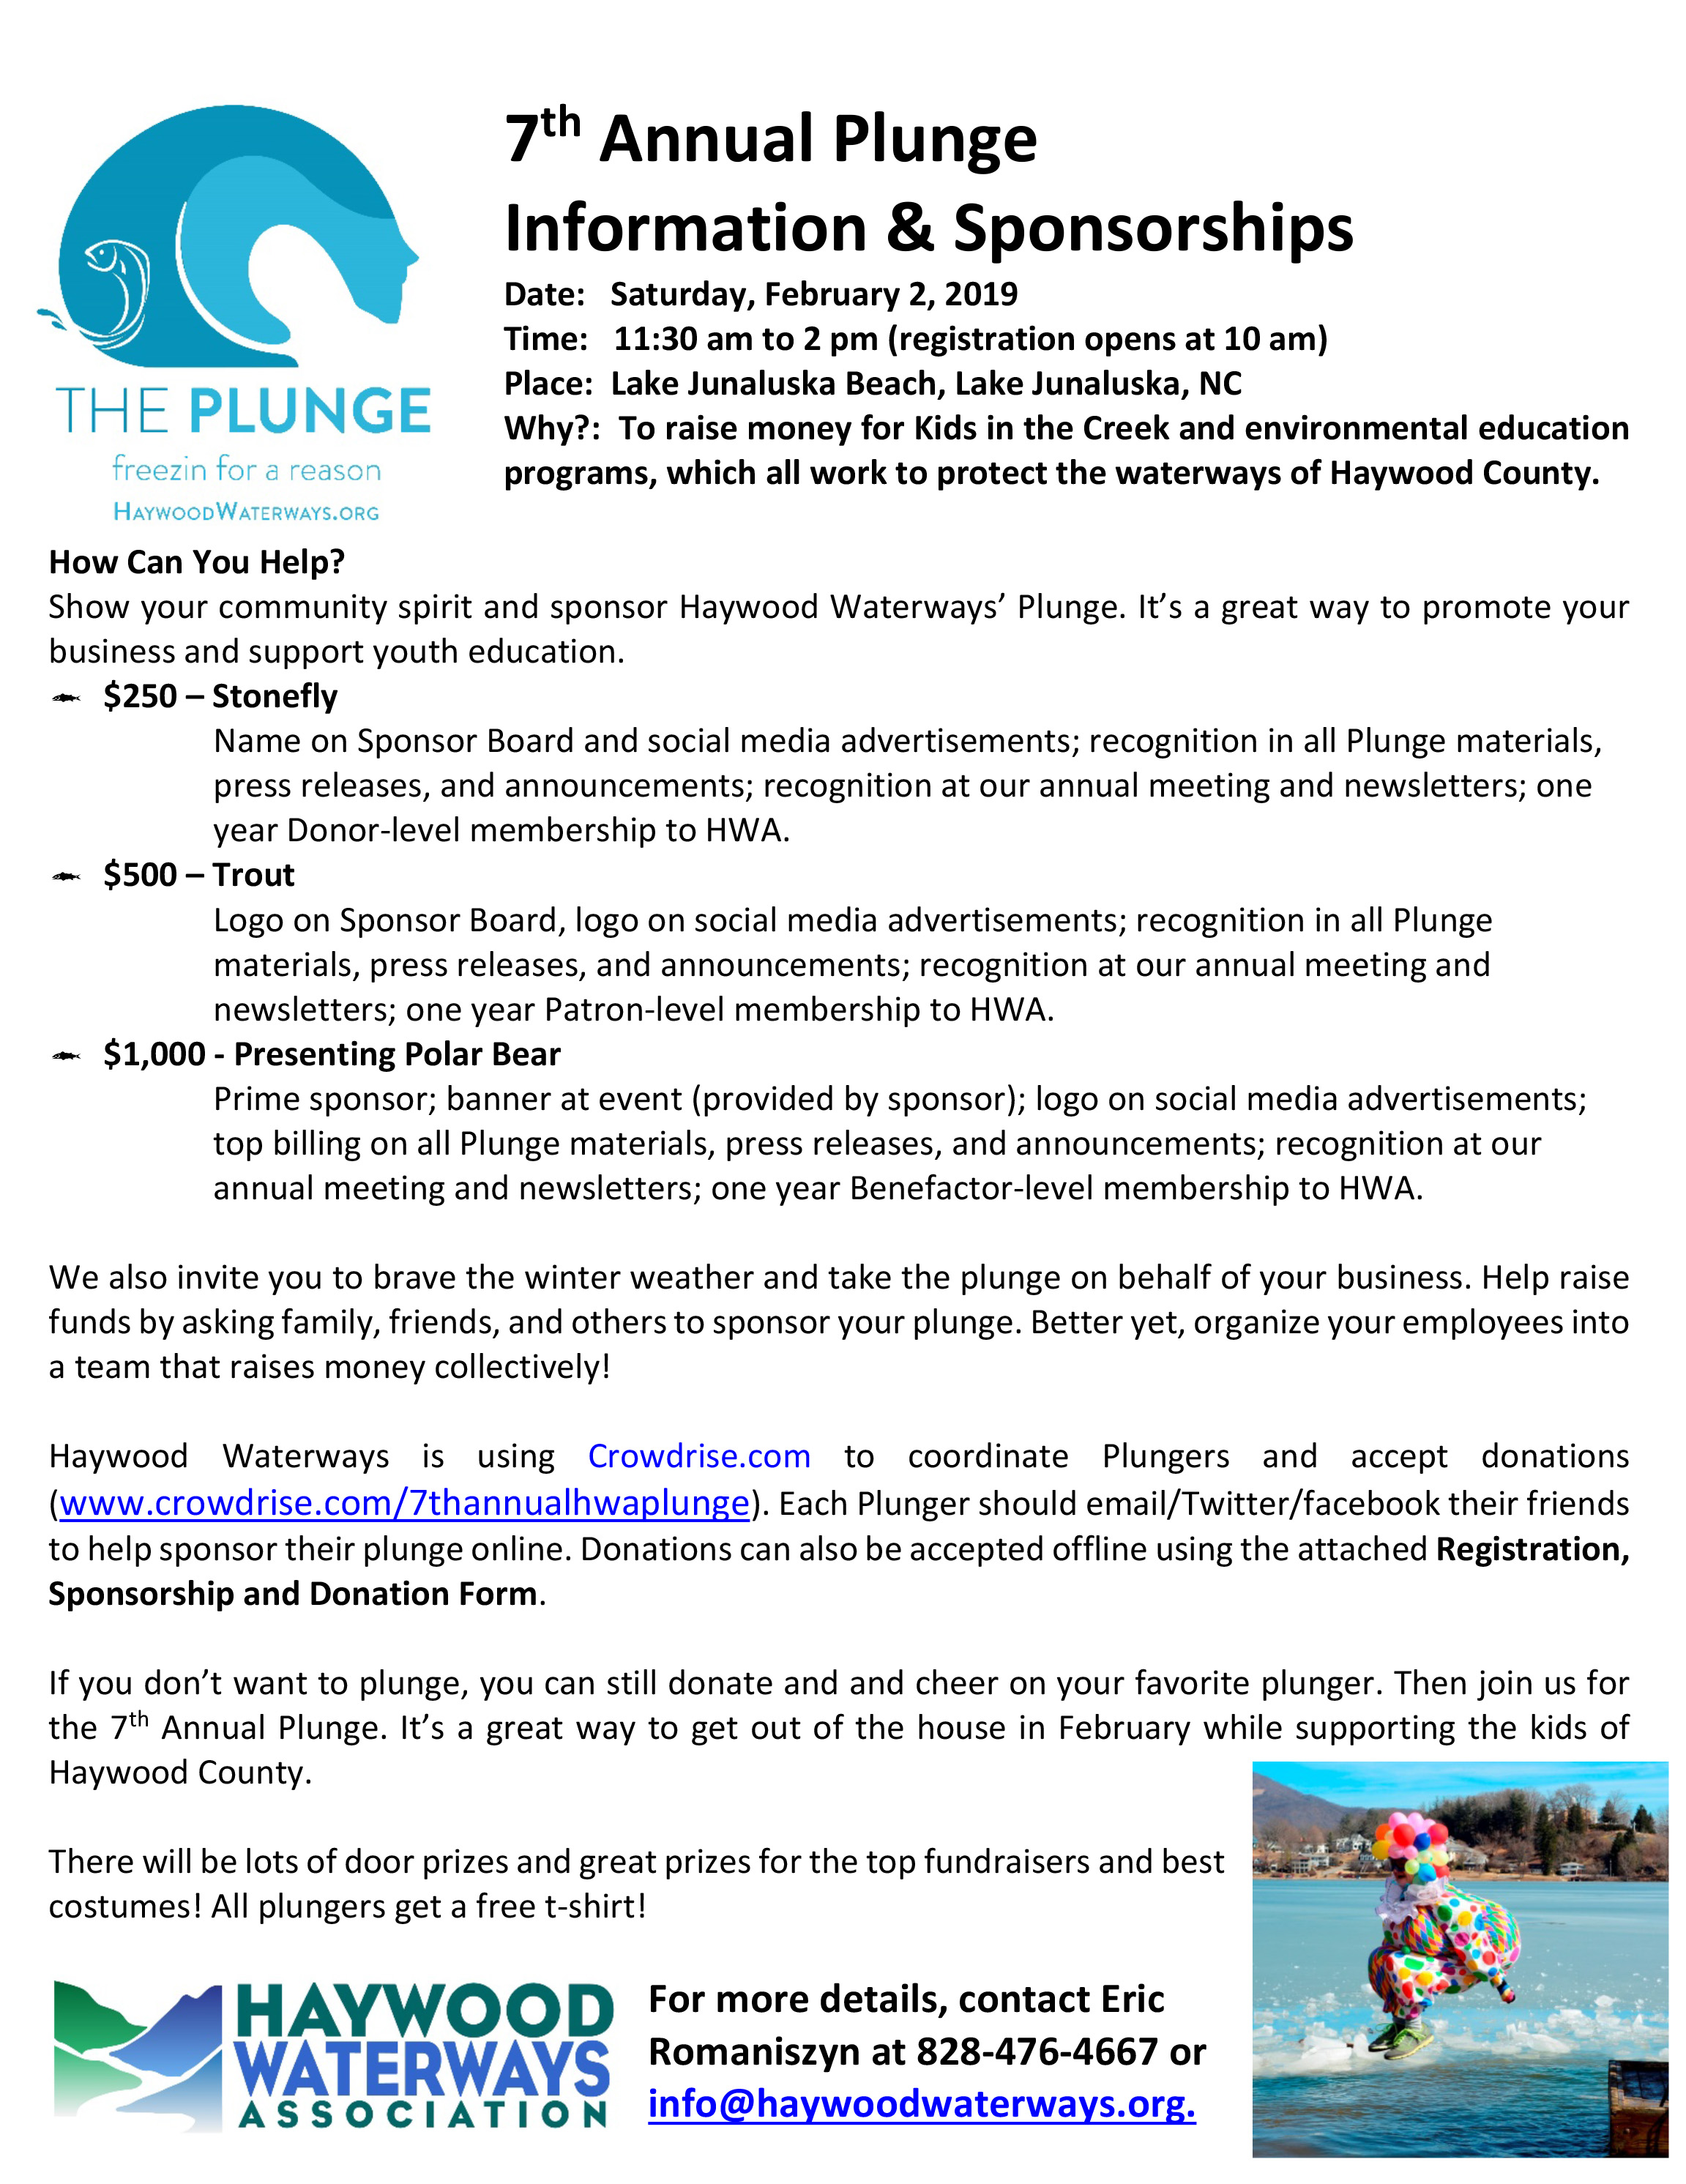 Microsoft Word - The Plunge 2019 Sponsorship, Donation, and Regi